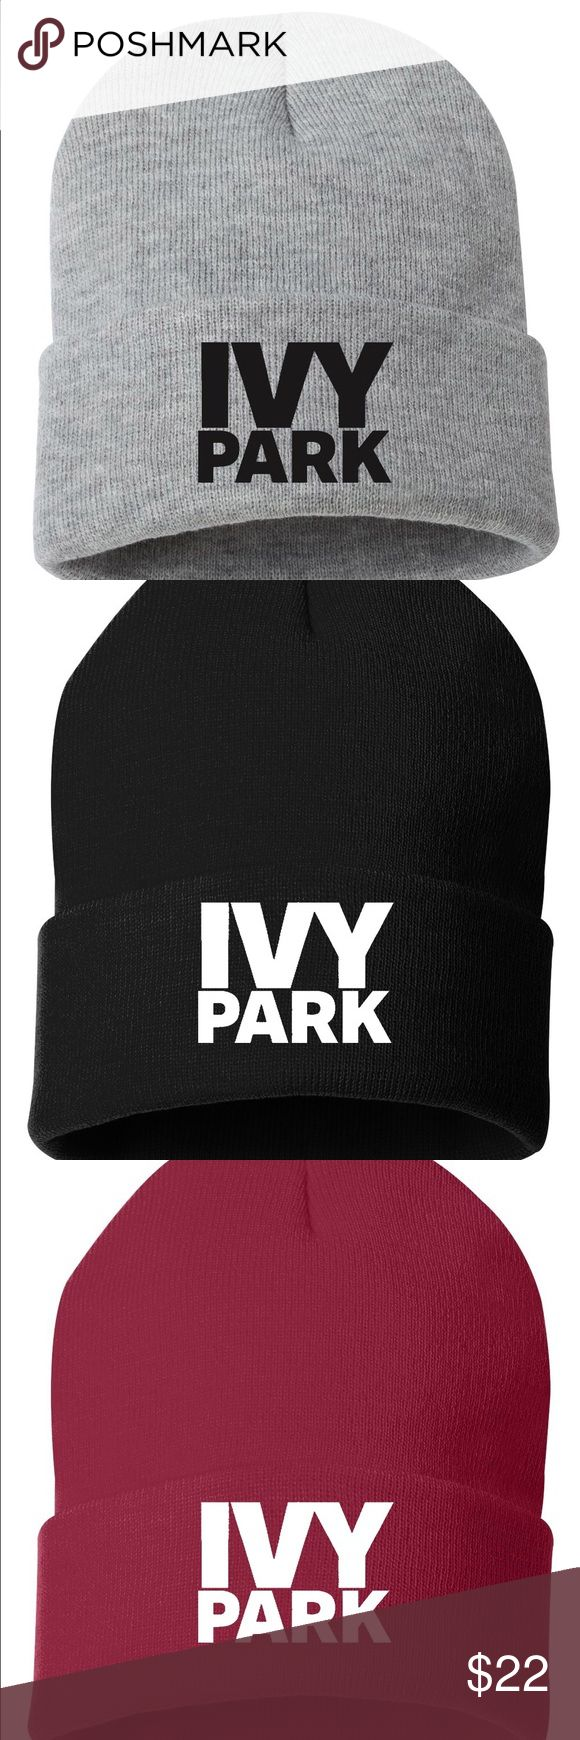 "Ivy Park Beanie Beanie Beyoncé Ribbed Thermal Hat Material: 100% Cotton  Size: One Size  Features: ribbed stretchy fabric made of 100% cotton wide cuff with Ivy Park logo at the front lined interior with same ribbed fabric, making it a double layer approx. dimensions, measured laying flat: 8.5"" L x 10.5"" H Accessories Hats"